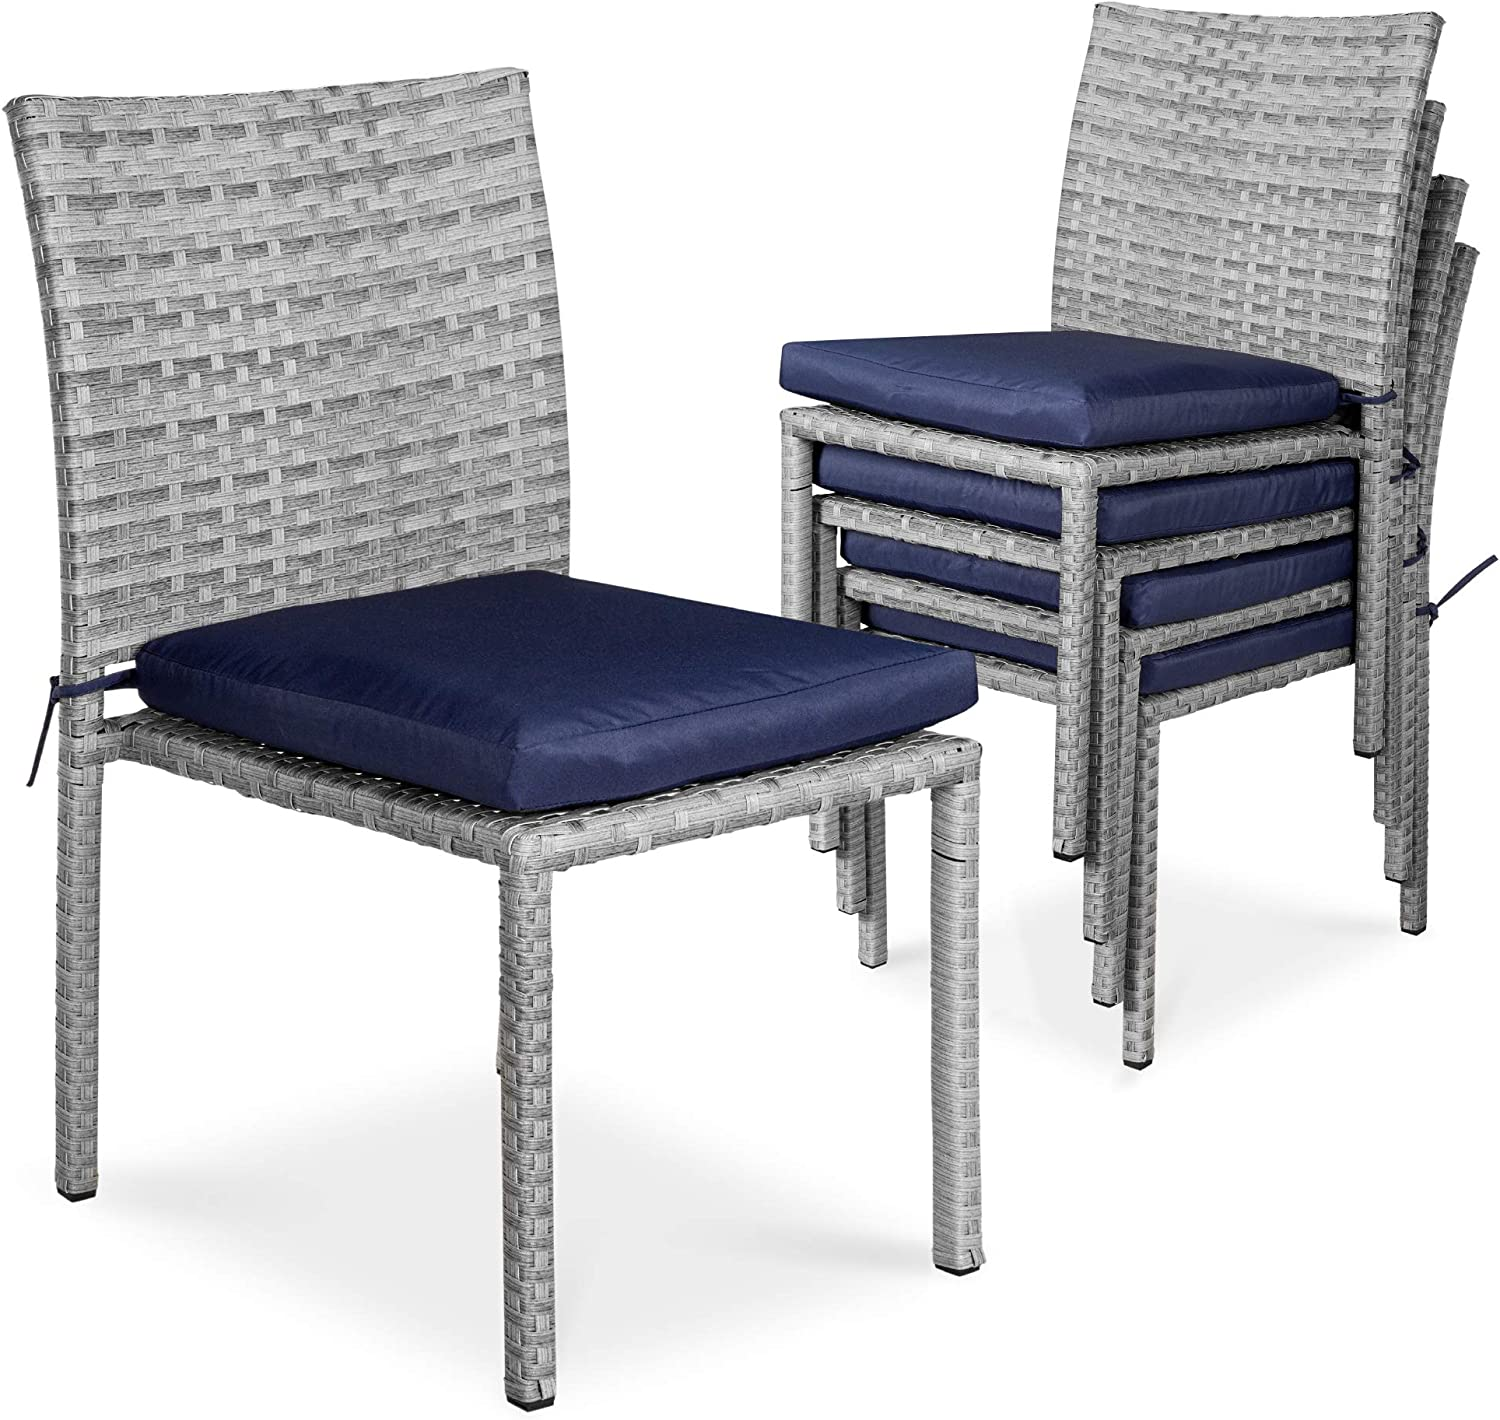 Best Choice Products Set of 4 Stackable Outdoor Patio Wicker Chairs w/Cushions, UV-Resistant Finish, and Steel Frame - Gray/Navy Blue